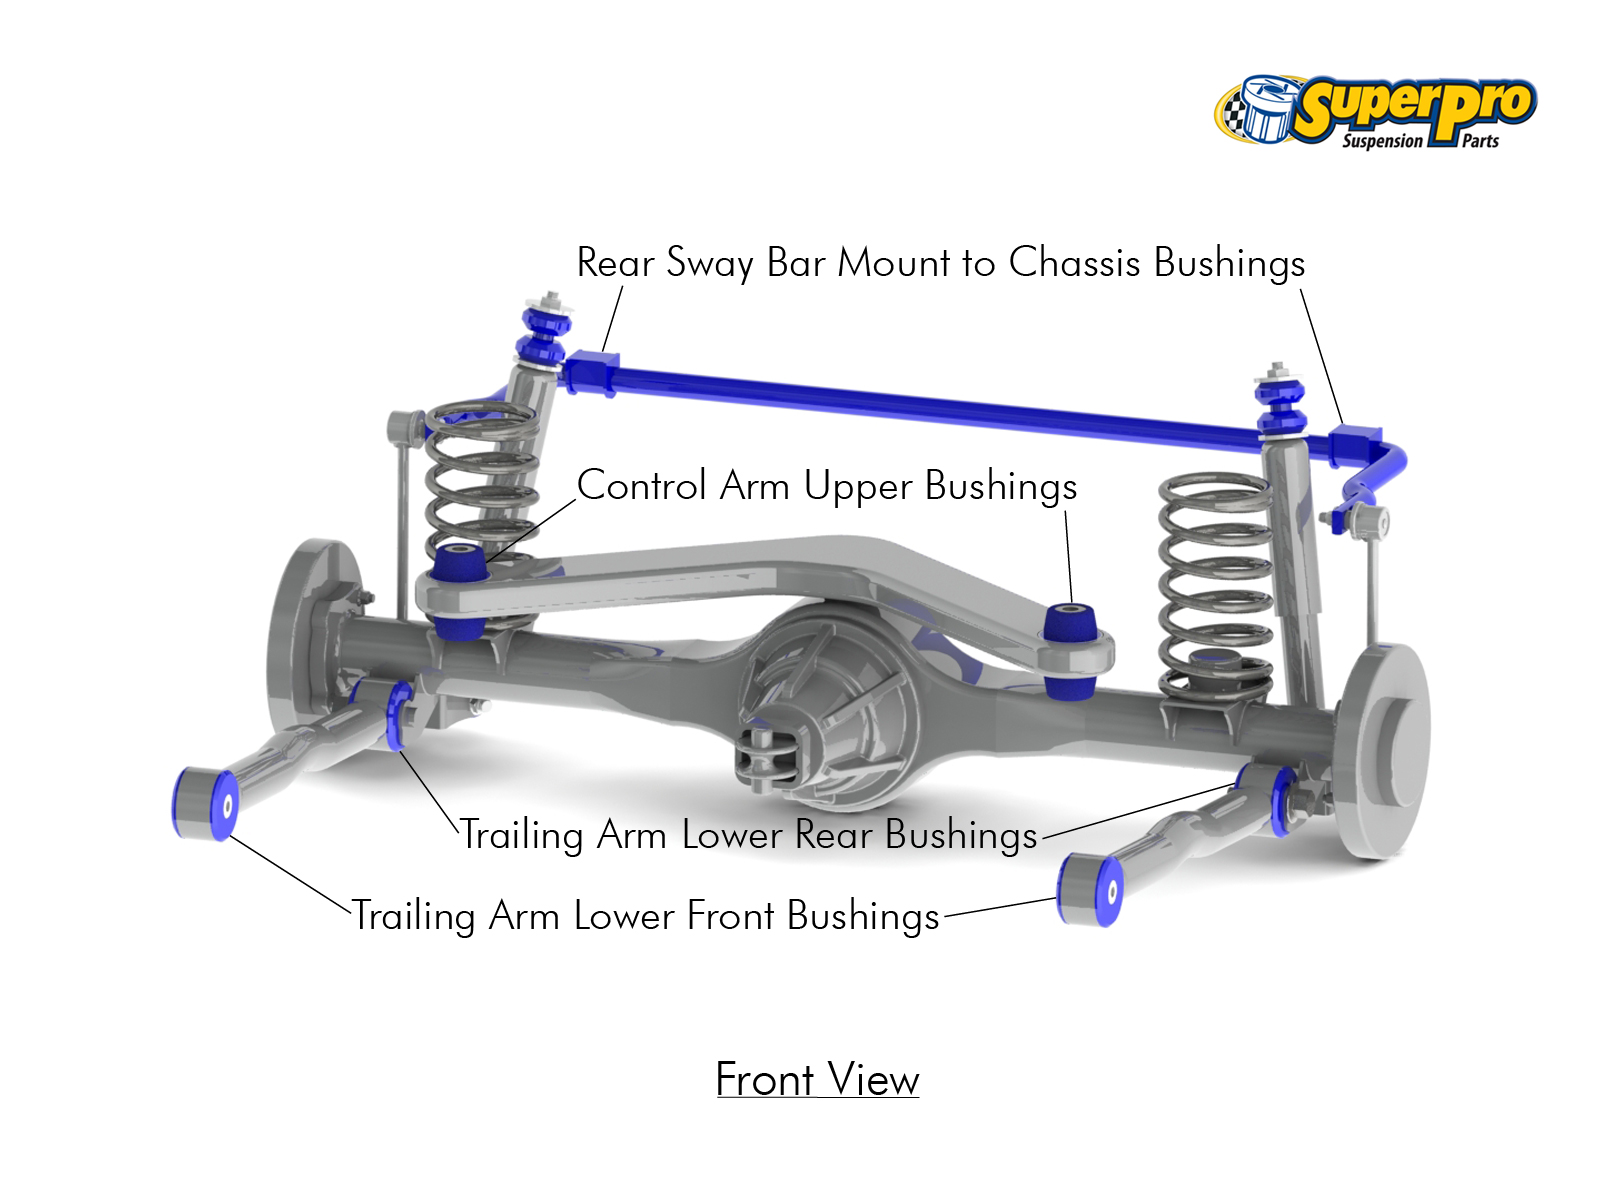 jeep grand cherokee front suspension diagram jeep free engine image for  user manual download 2000 Jeep Cherokee Sport Wiring Diagram 1998 Jeep Grand  ...